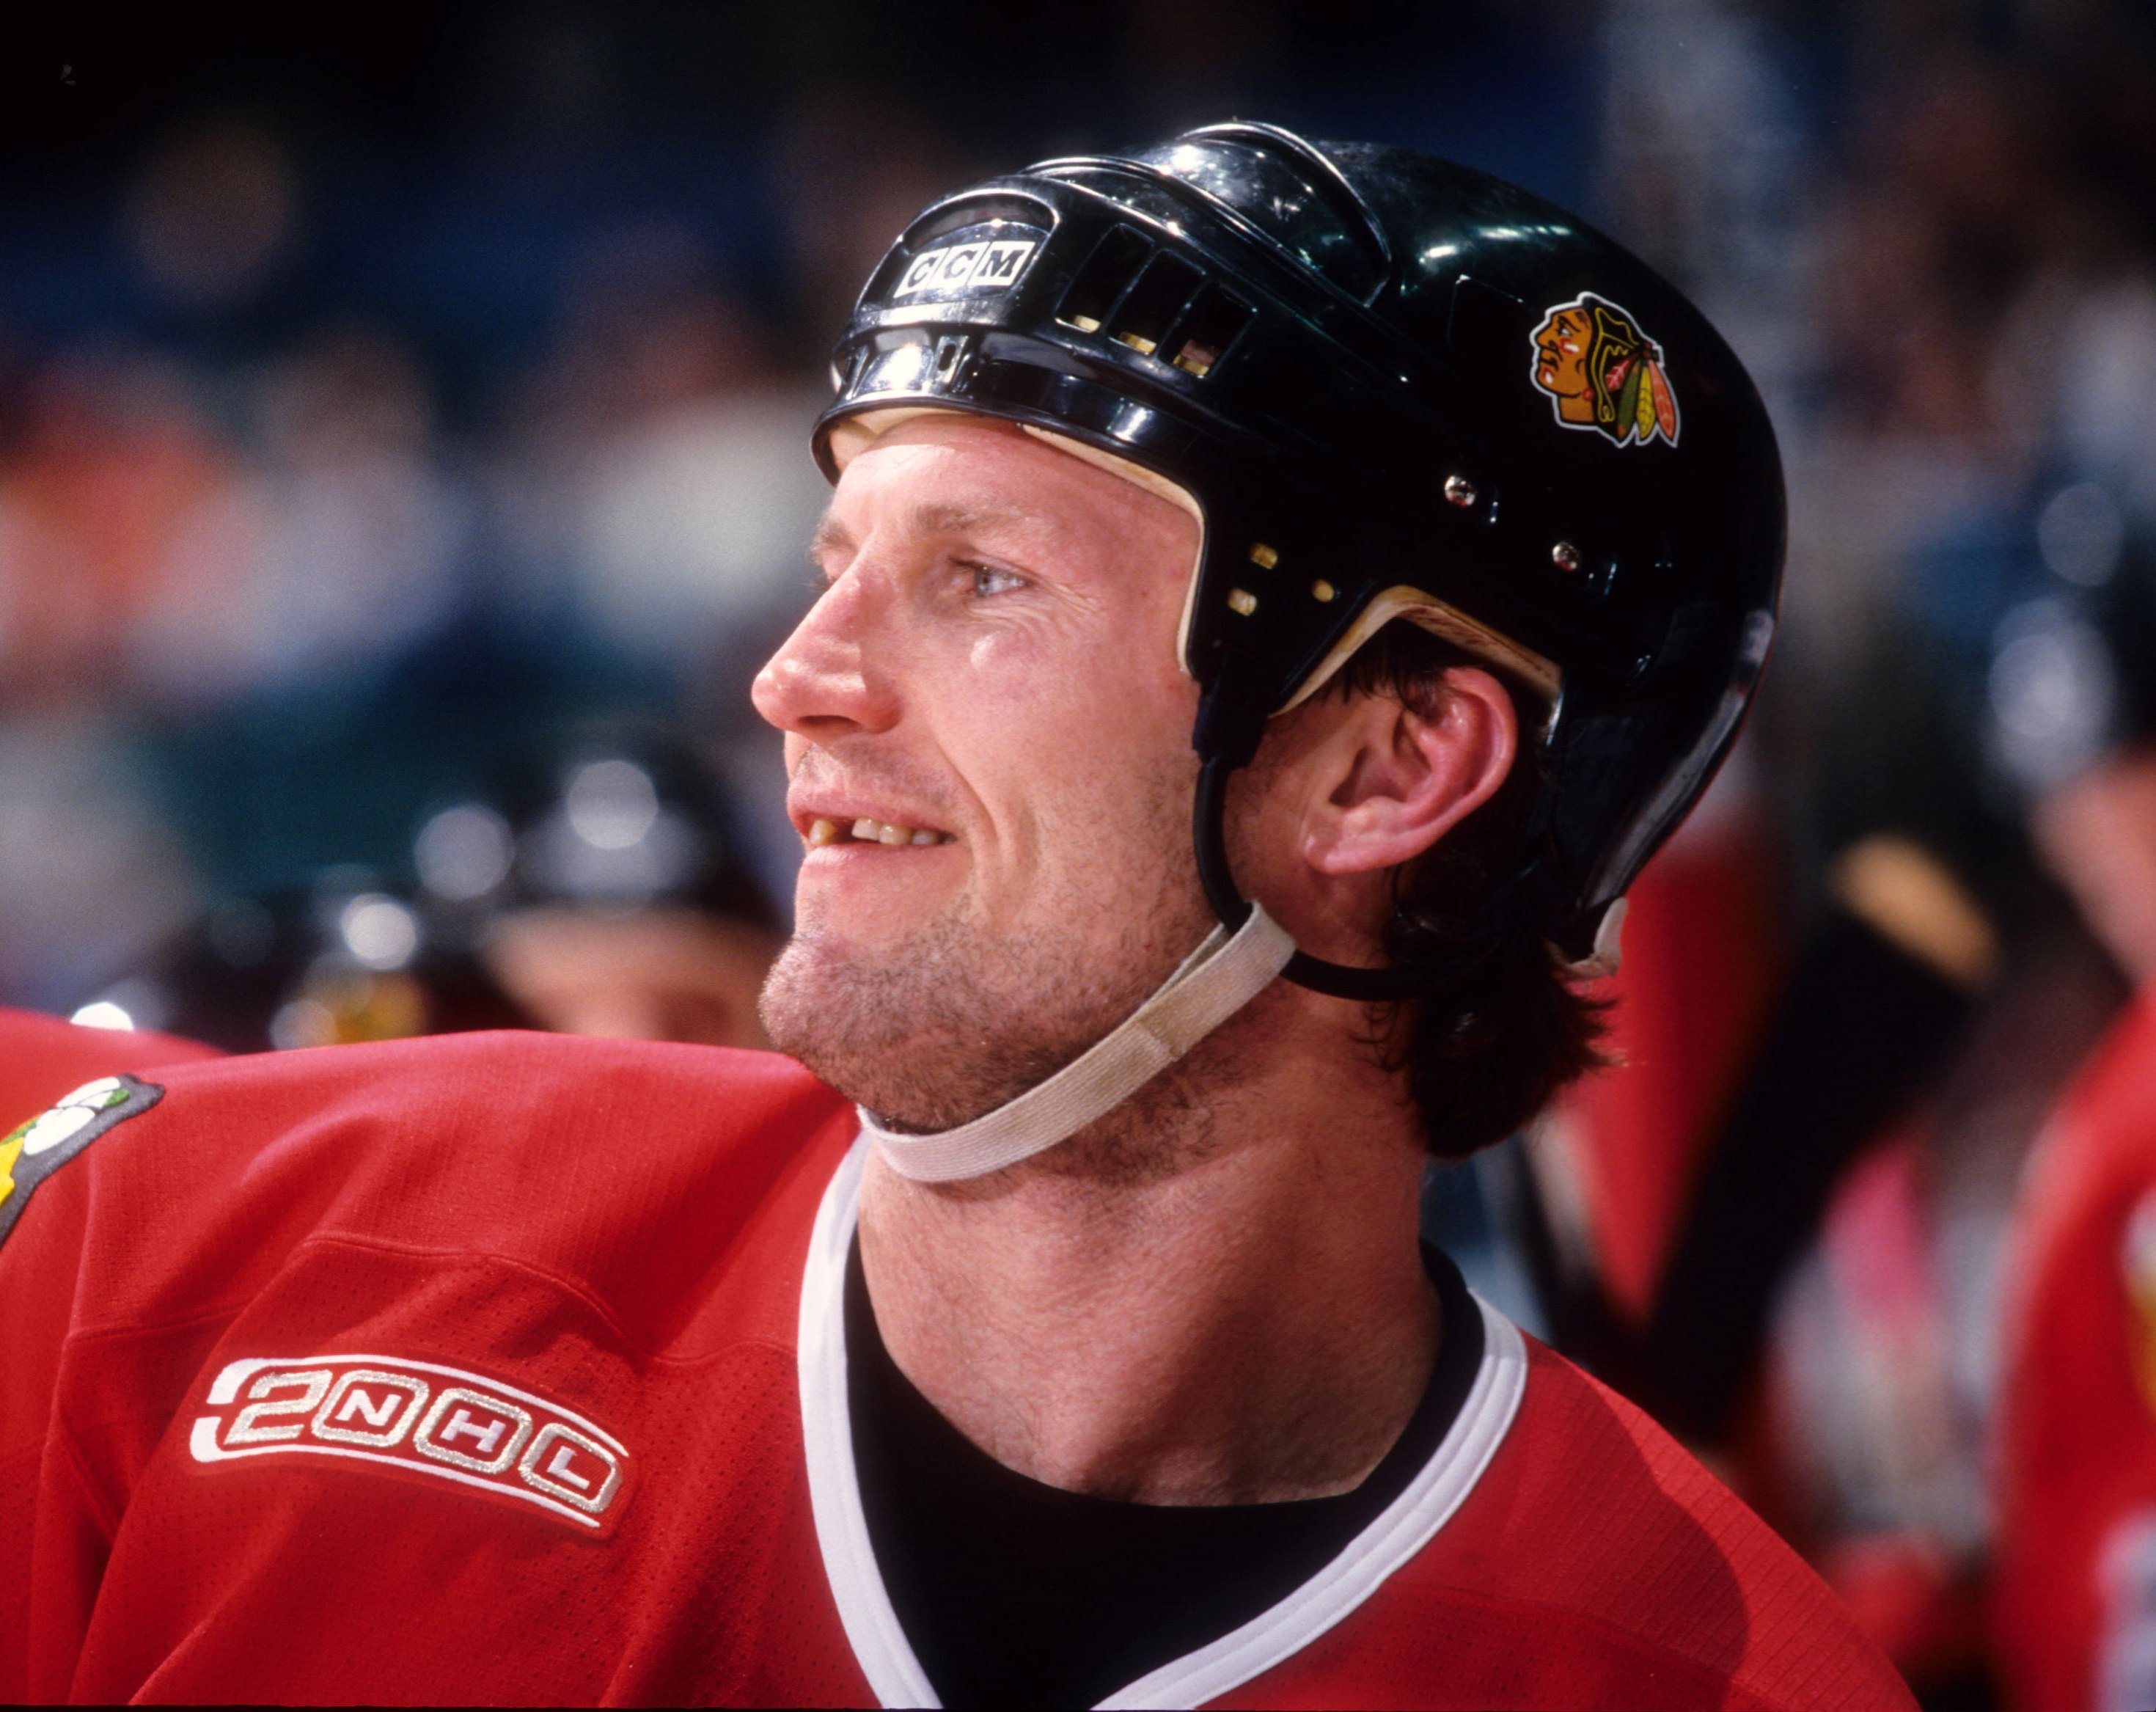 Former Detroit Red Wings and Chicago Blackhawks star Bob Probert died tragically in 2010.Former Detroit Red Wings and Chicago Blackhawks star Bob Probert died tragically in 2010.